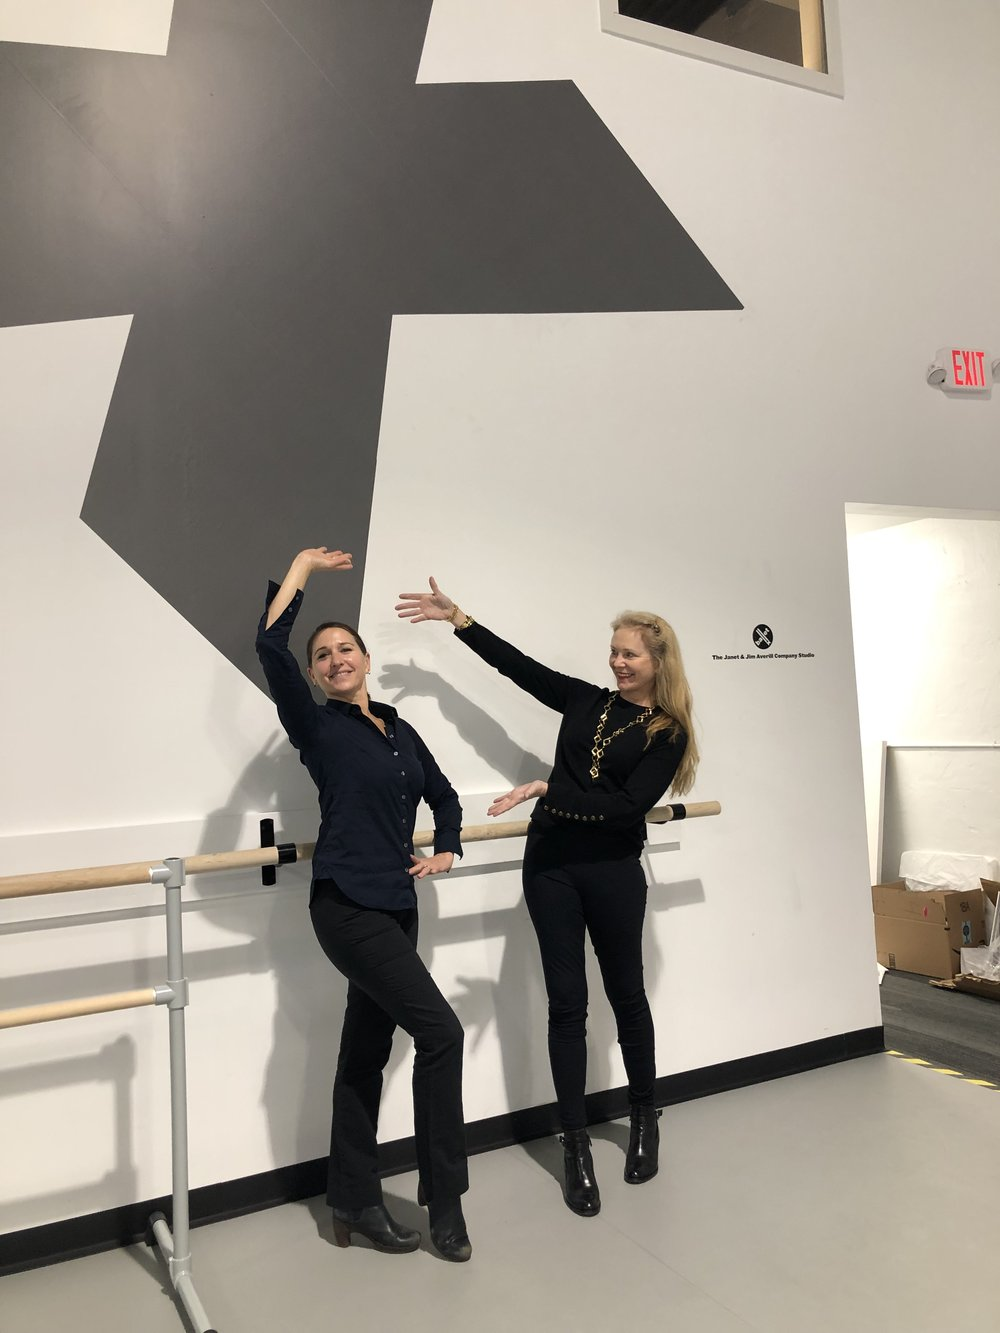 DDP Founder Liza Yntema pictured with Christine Cox, Artistic Director of BalletX, in the company's new studio during Yntema's listening tour.